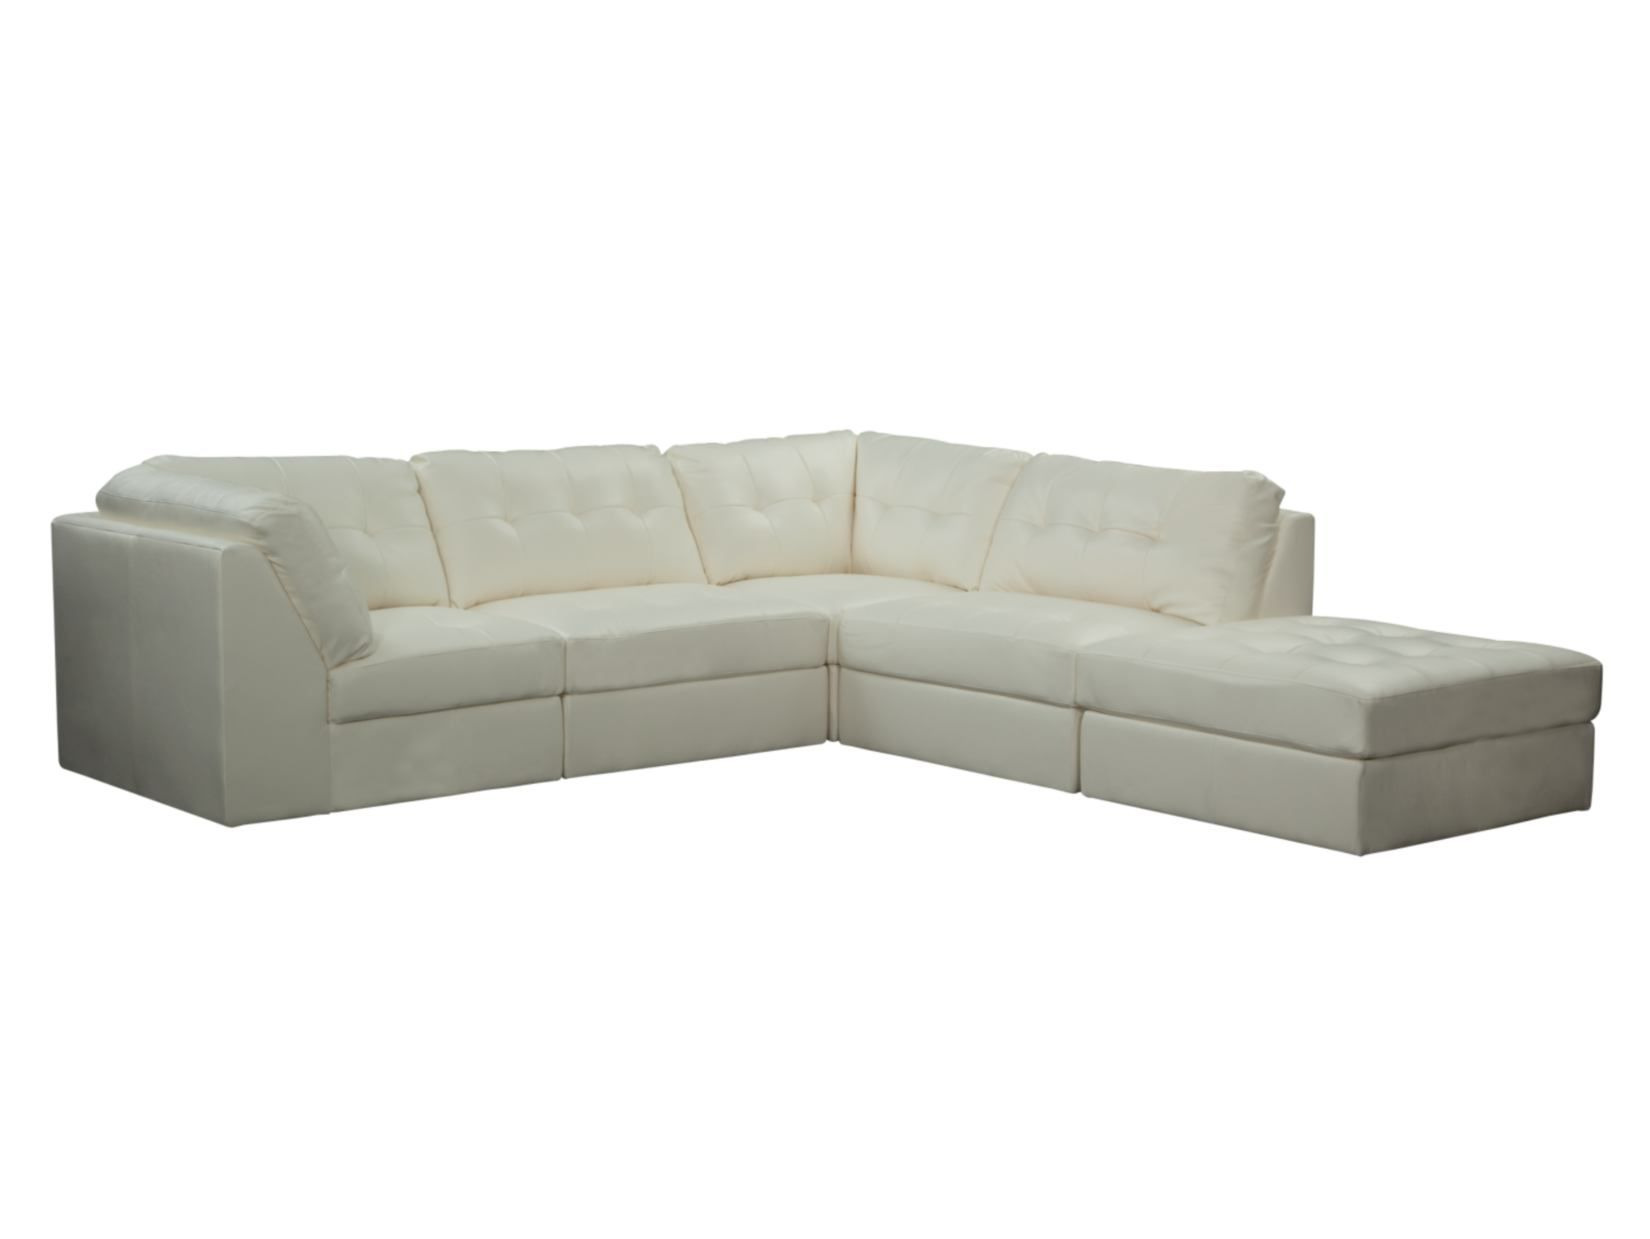 Superieur Aventura White 5 PC Sectional   Value City Furniture